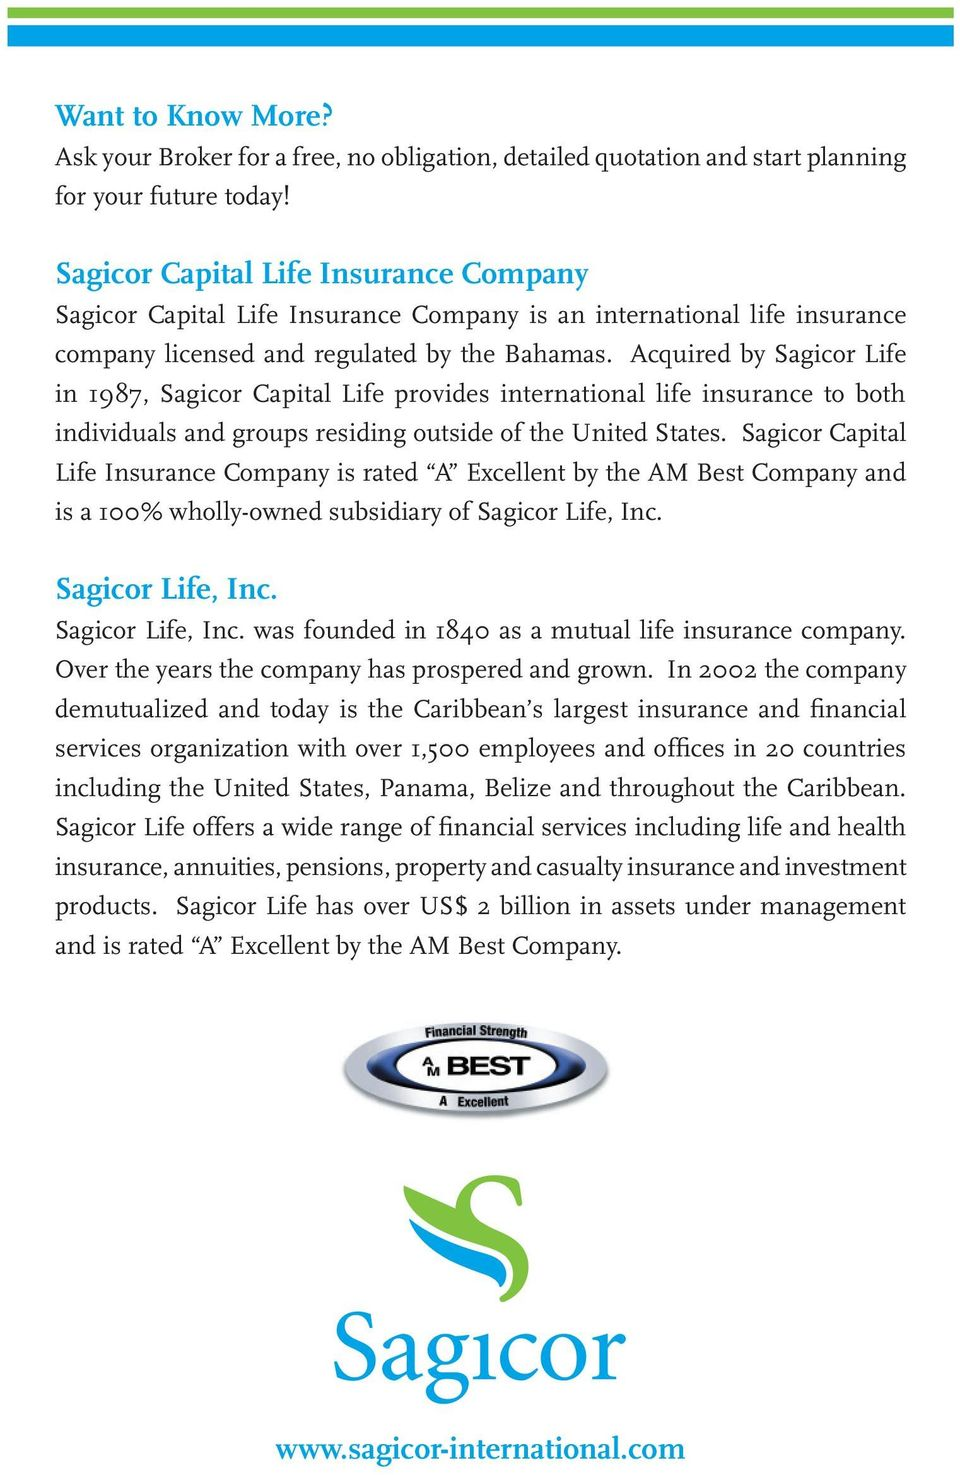 Acquired by Sagicor Life in 1987, Sagicor Capital Life provides international life insurance to both individuals and groups residing outside of the United States.